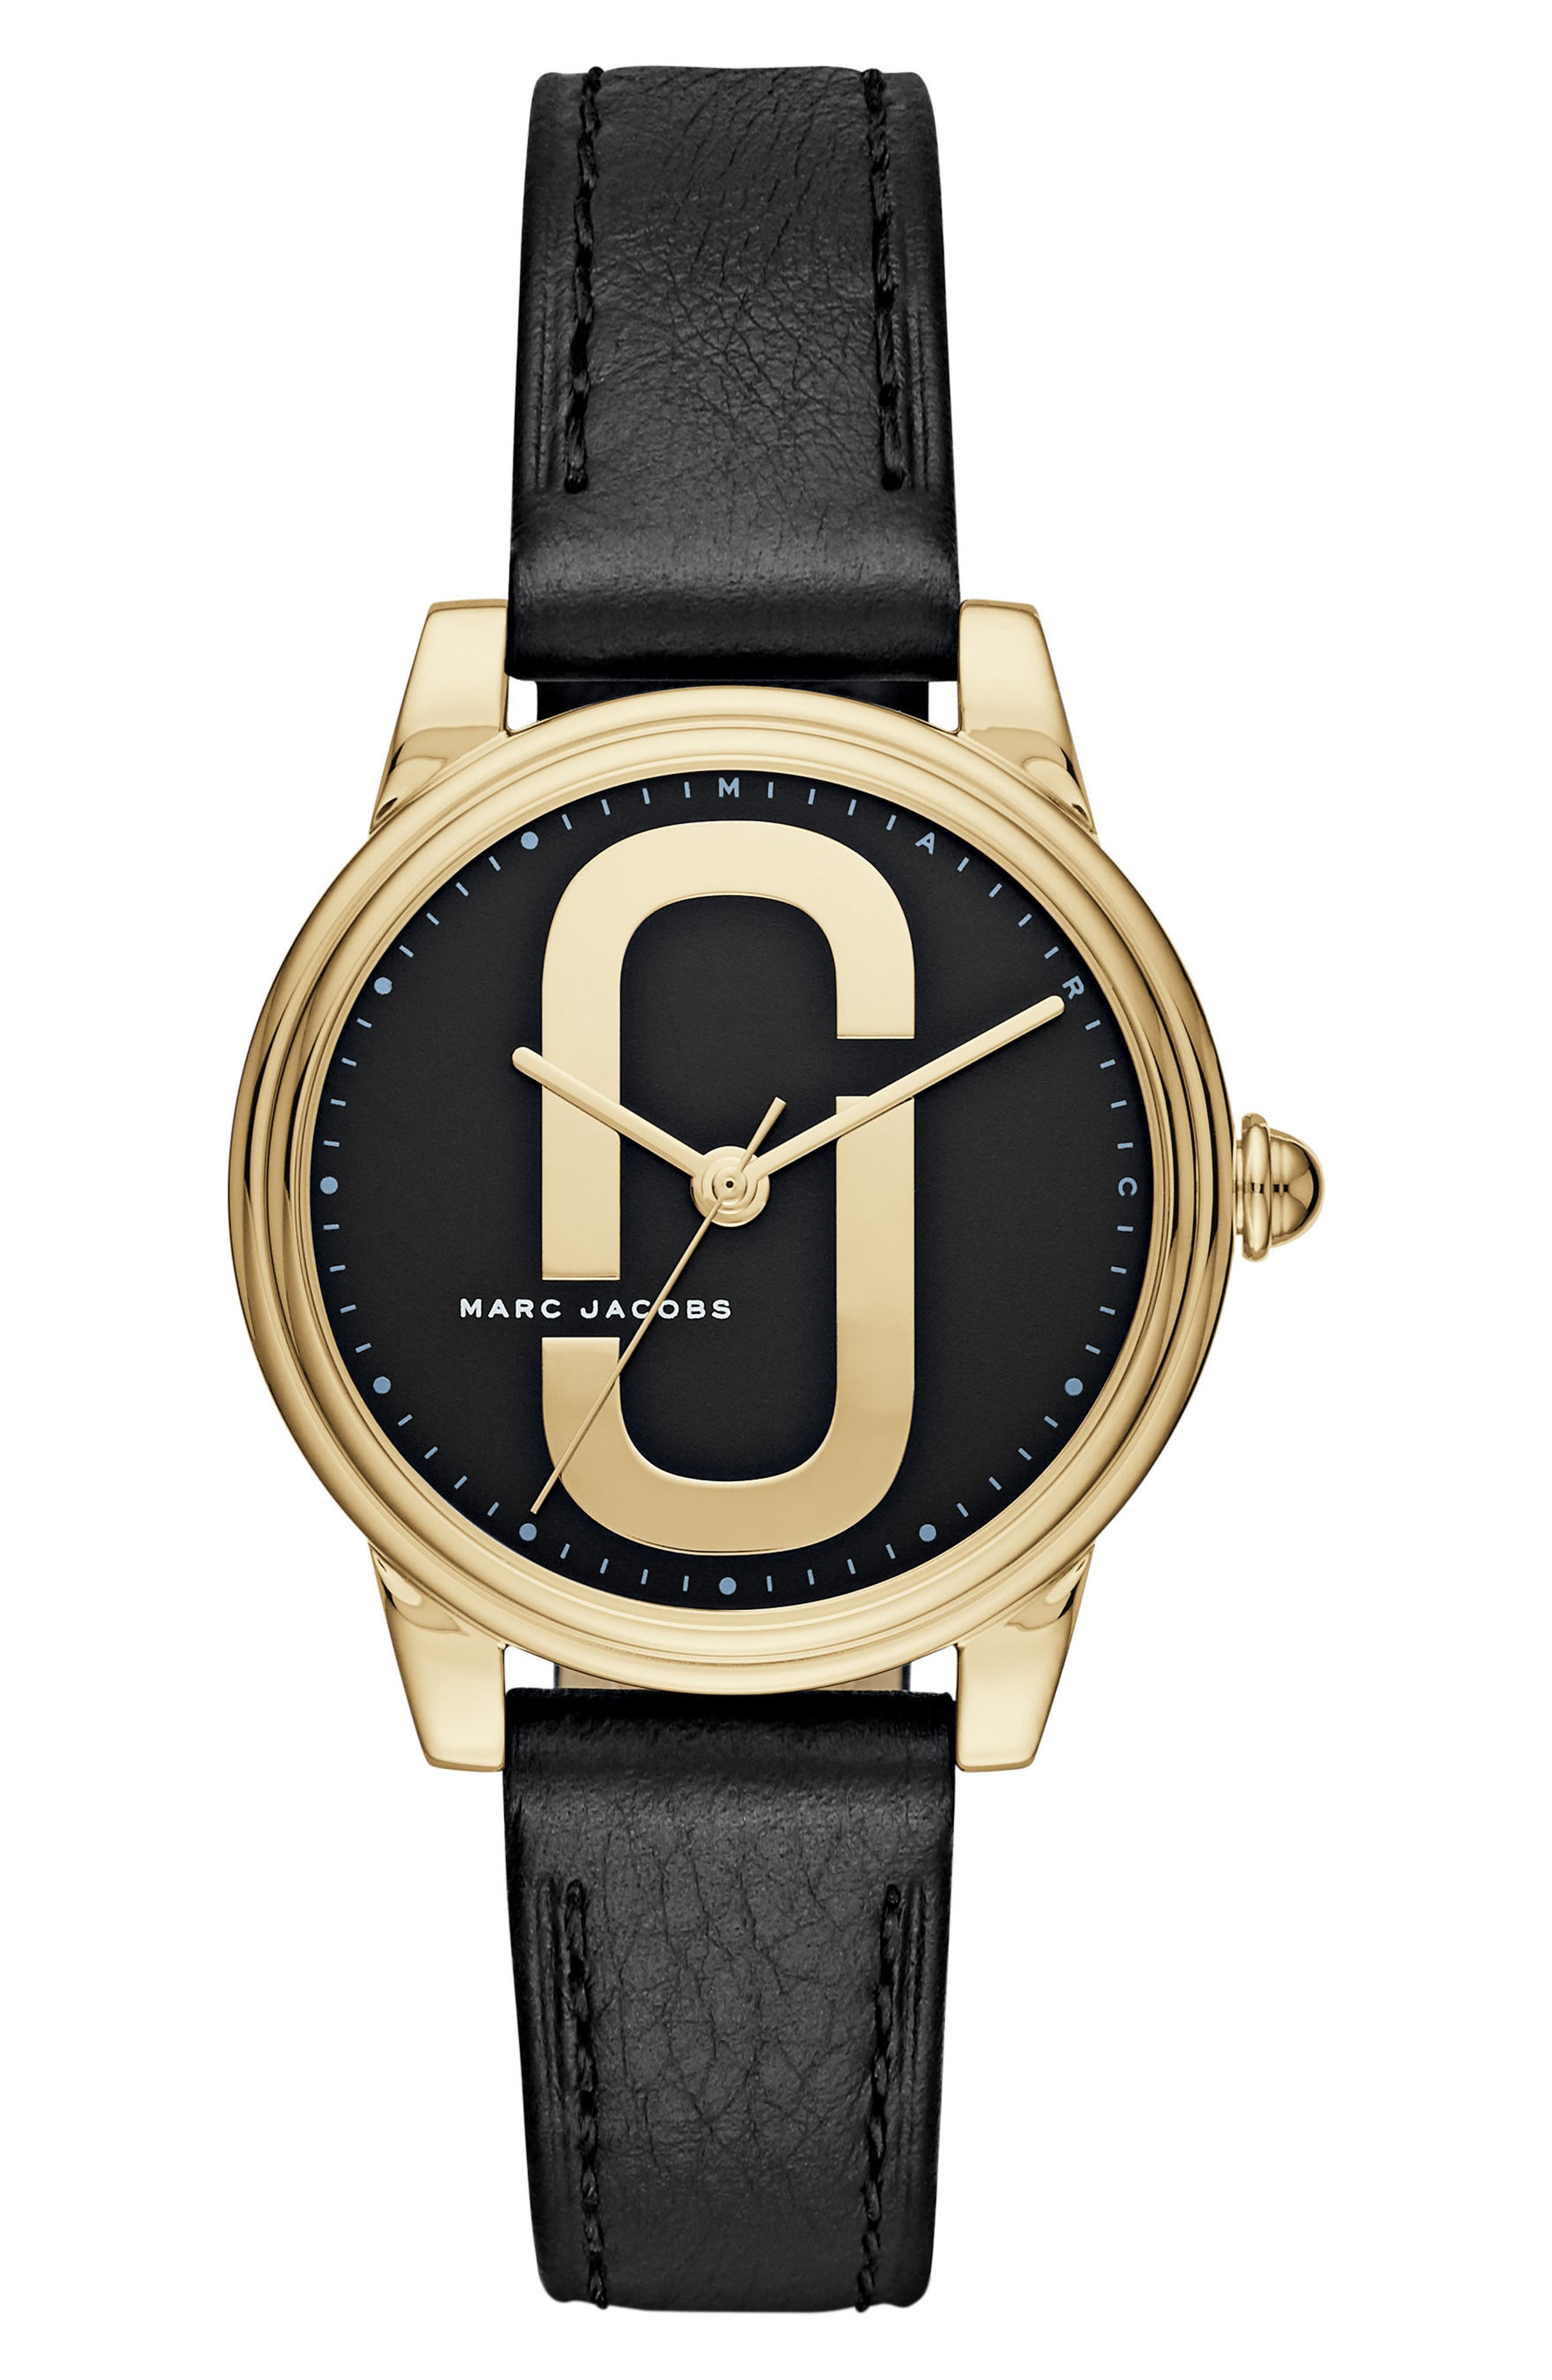 MARC JACOBS Corie Leather Strap Watch, 36mm